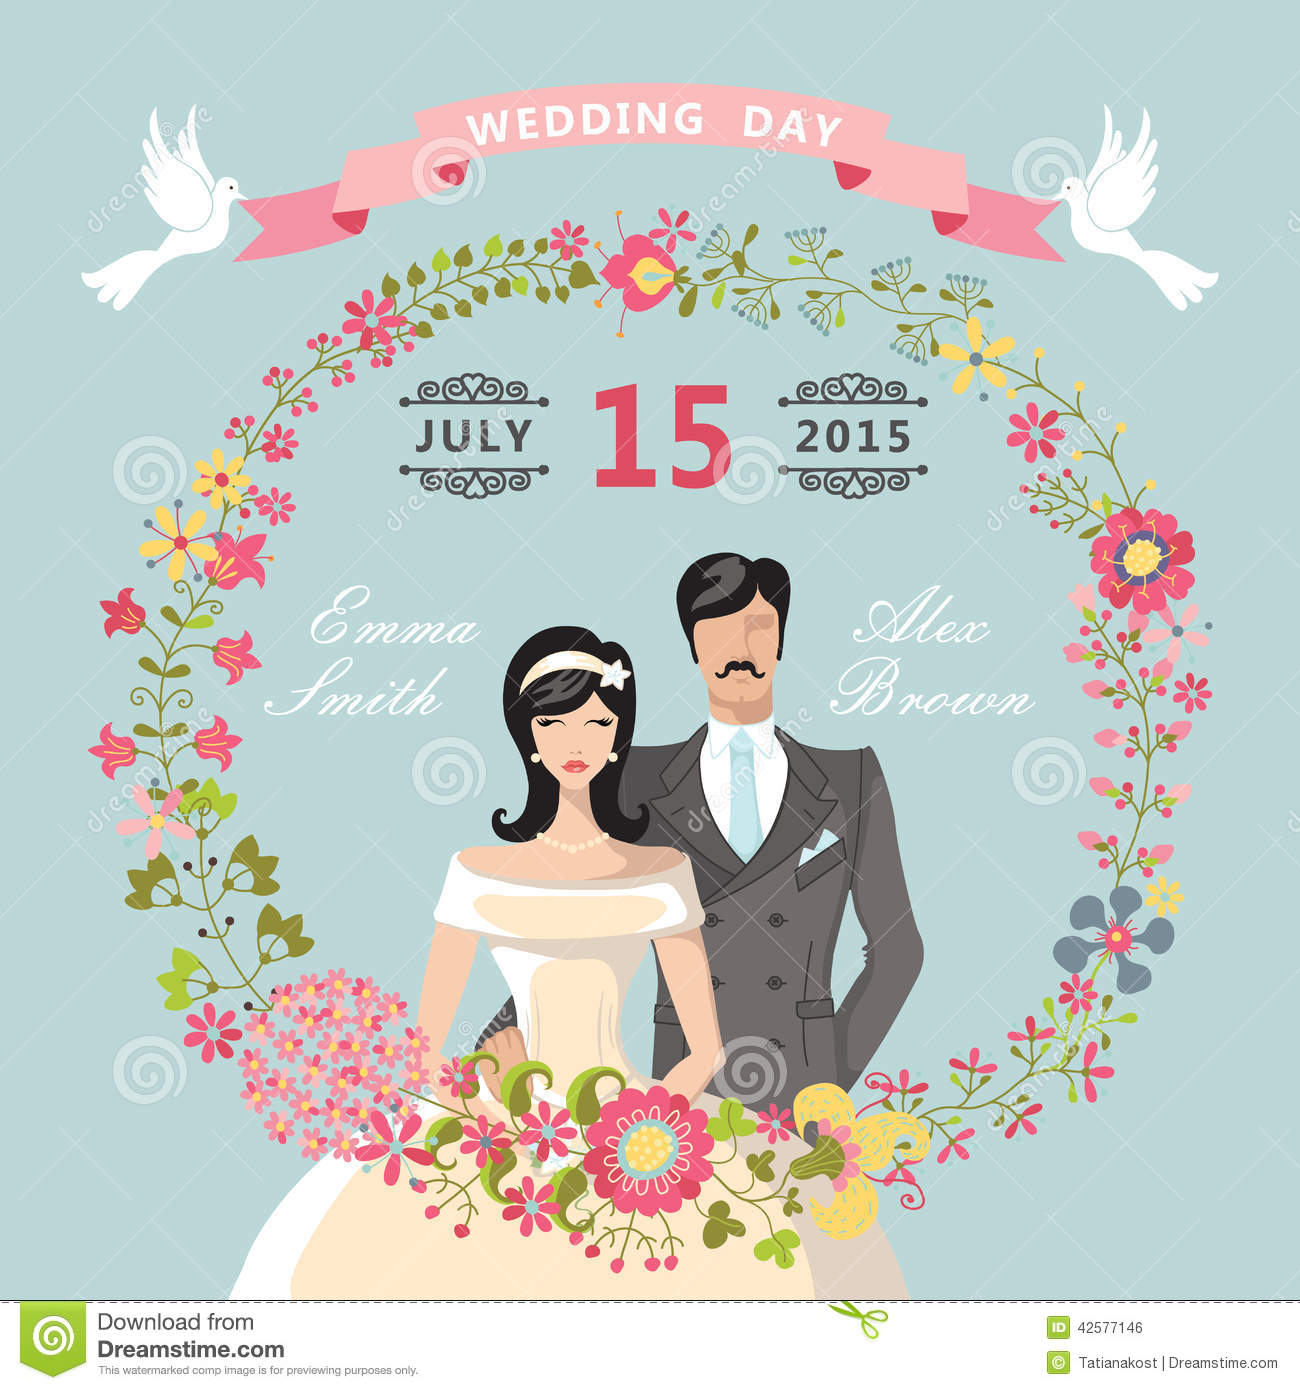 cool wedding invites cool wedding invitations rockabilly wedding invitation set featuring a by modern cute wedding invitations